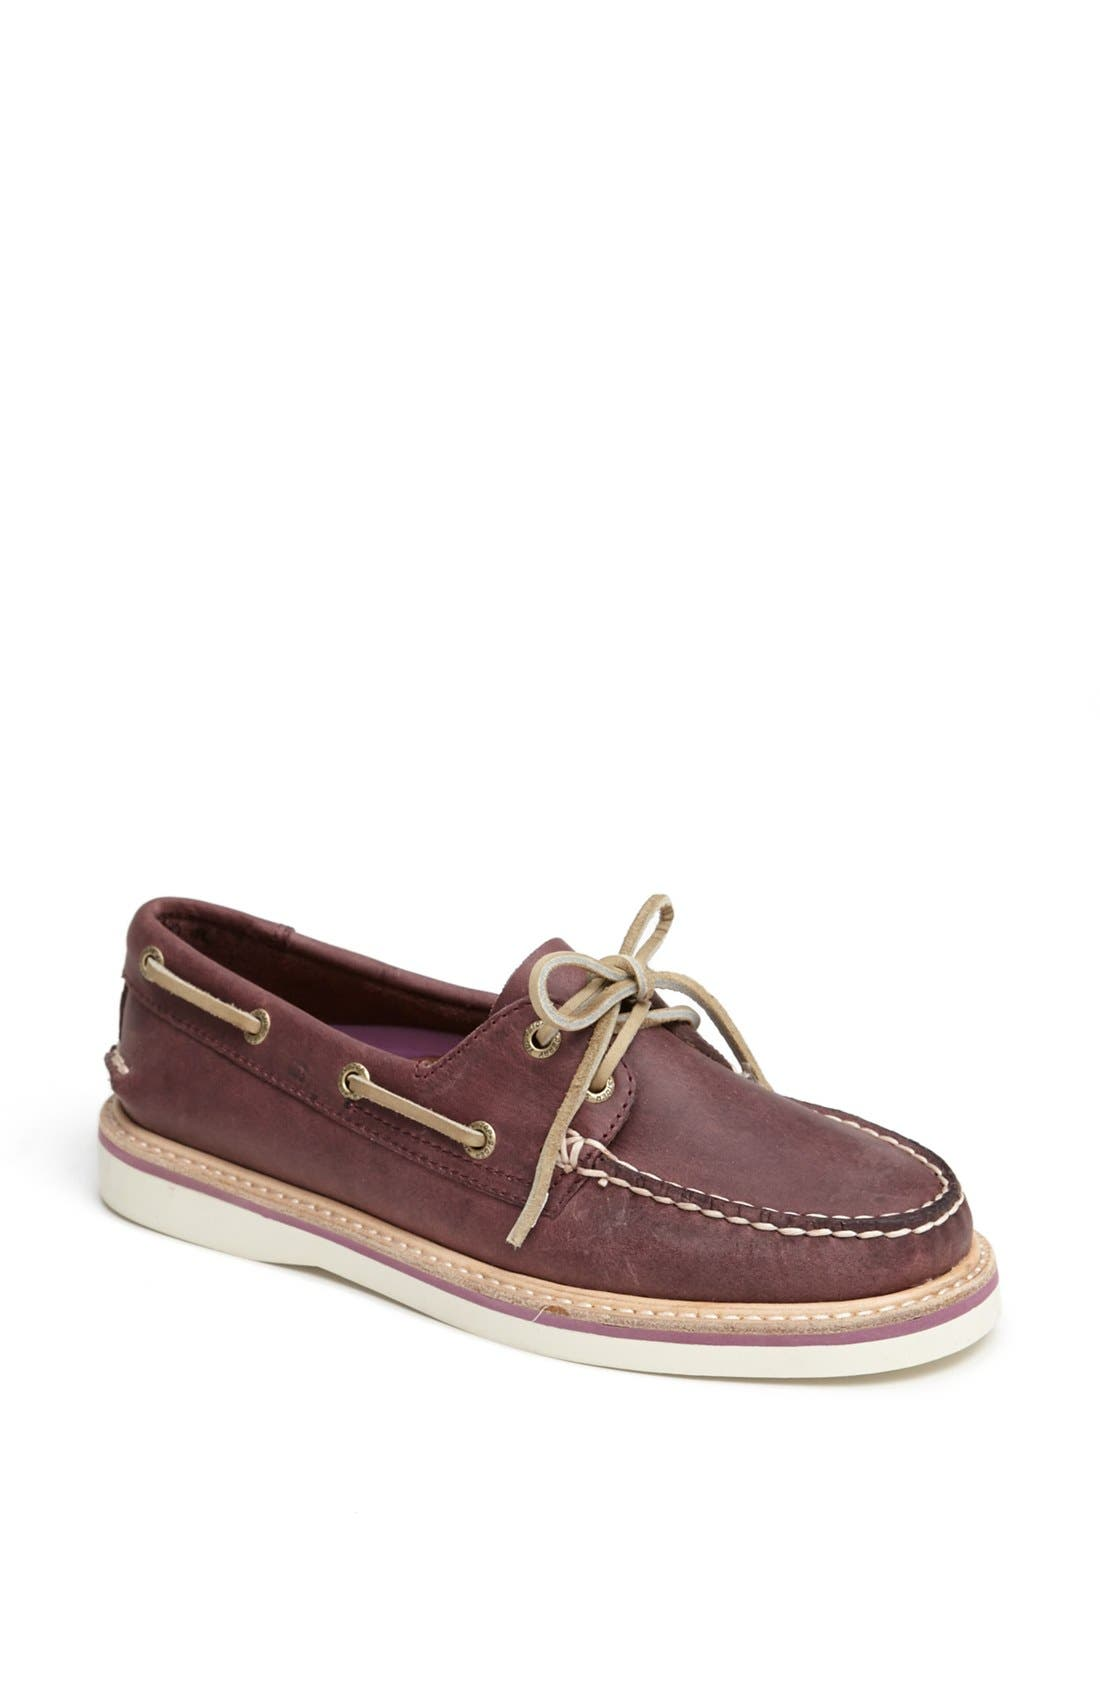 Alternate Image 1 Selected - Sperry Top-Sider® 'Grayson' Boat Shoe (Online Only)